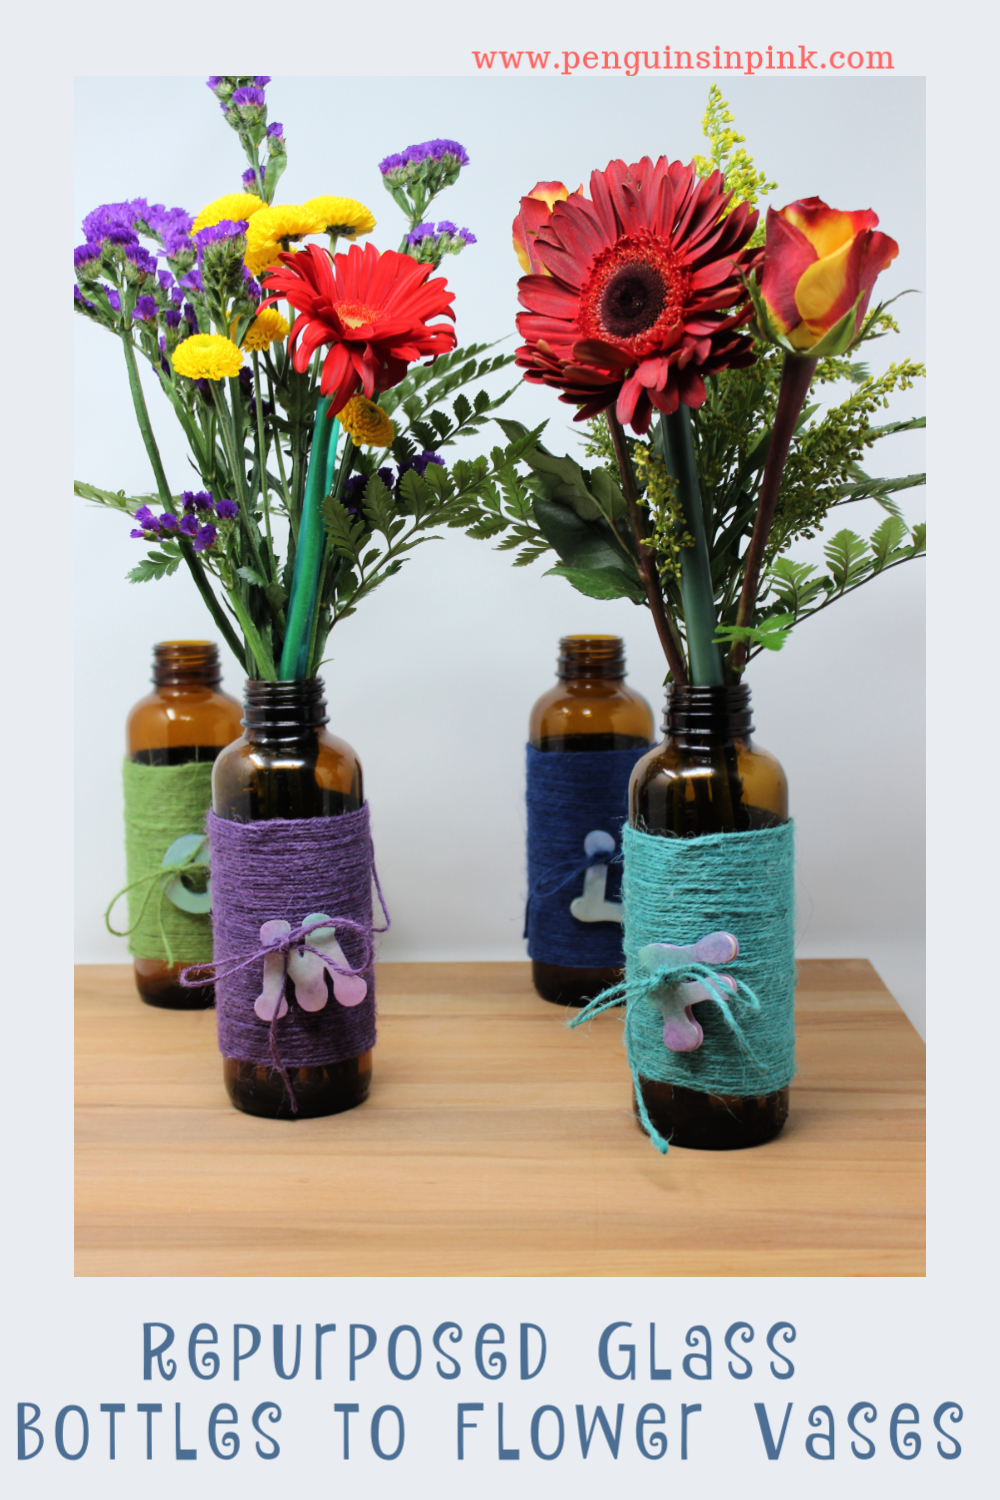 These Repurposed Glass Bottles to Flower Vases are are a fun way to dress up a plain glass bottle into a cute gift, centerpiece, or decor for a party.